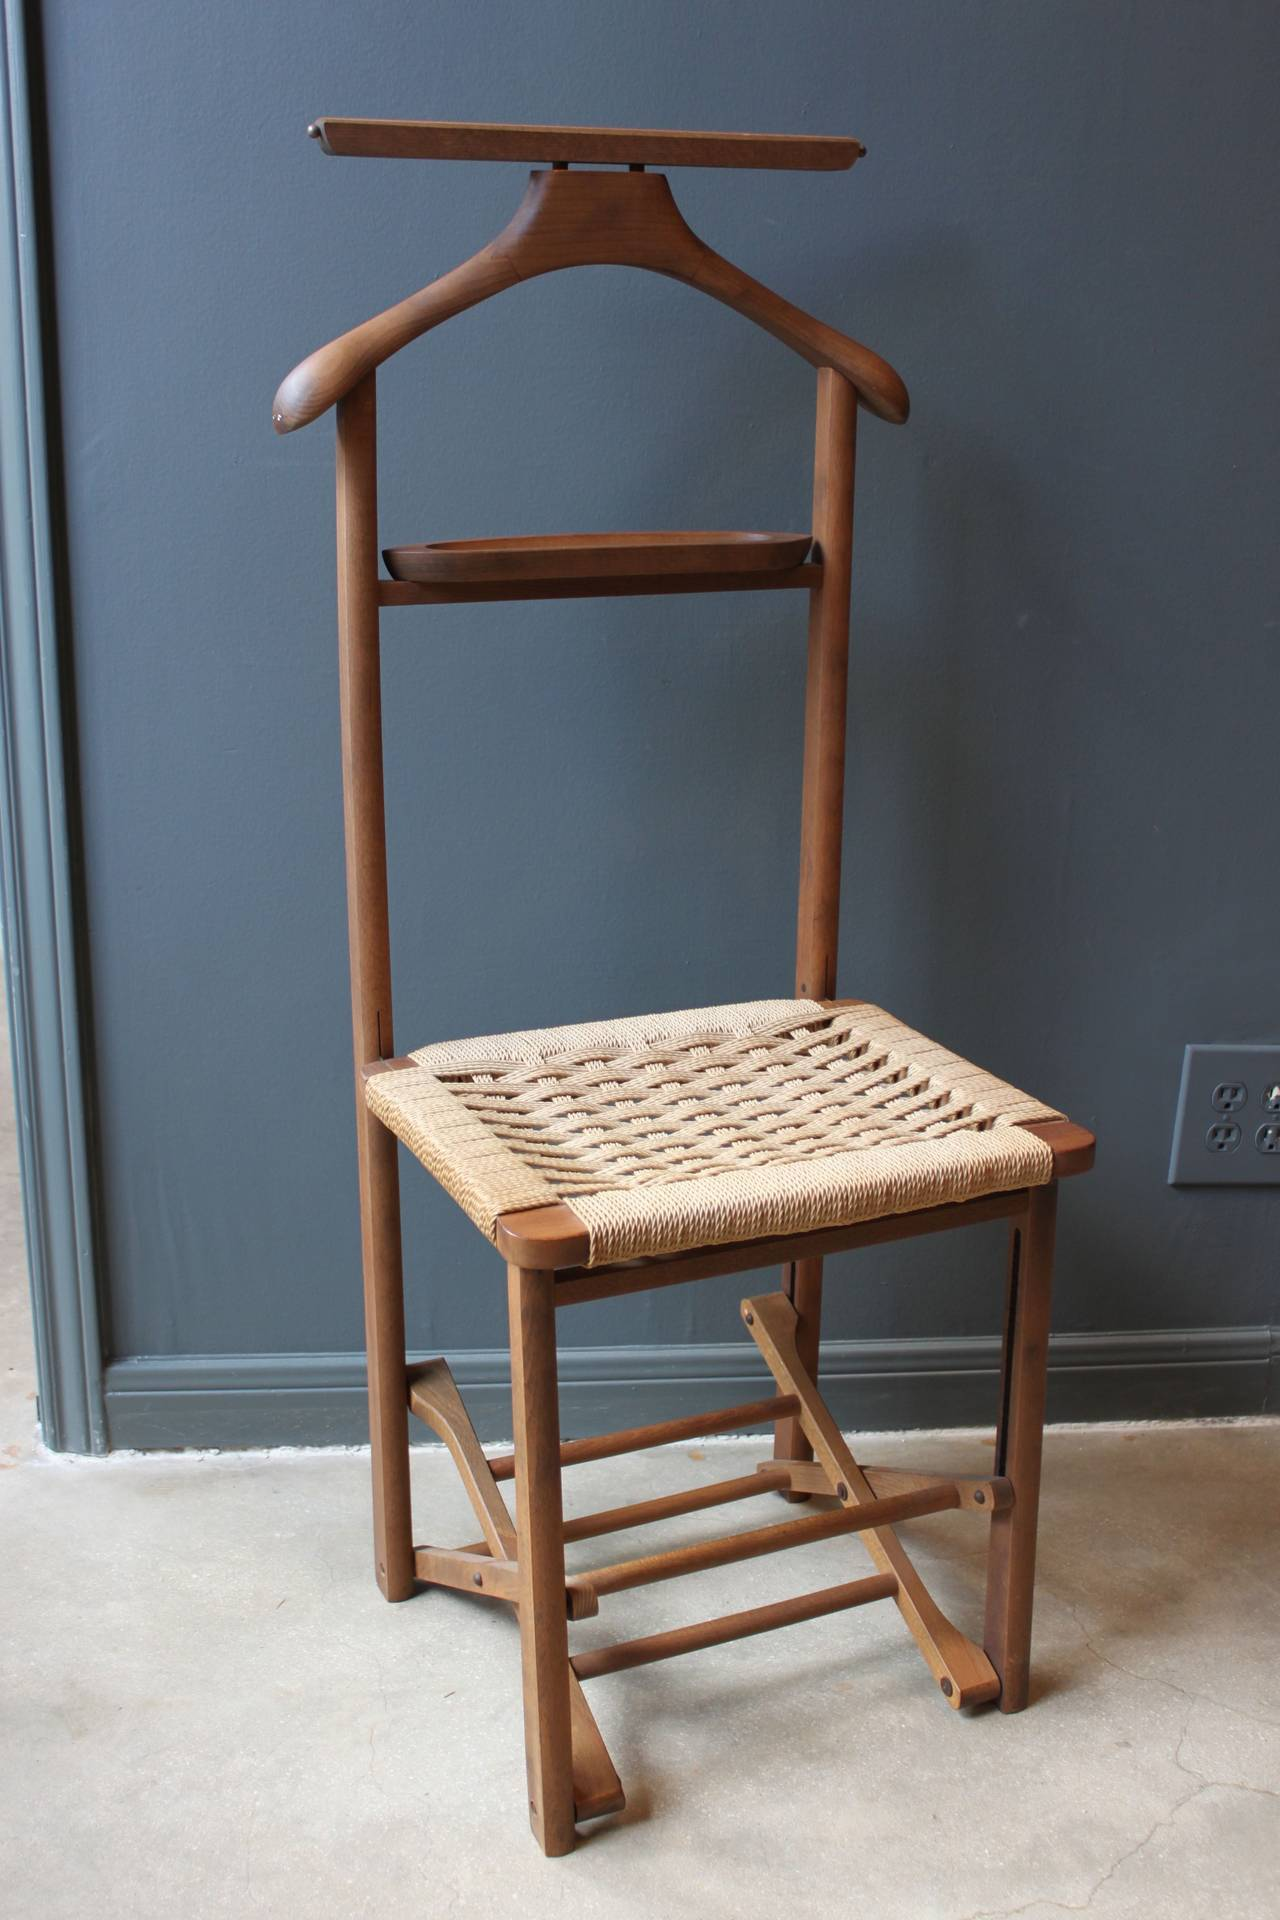 Wooden Chair With Wicker Seat